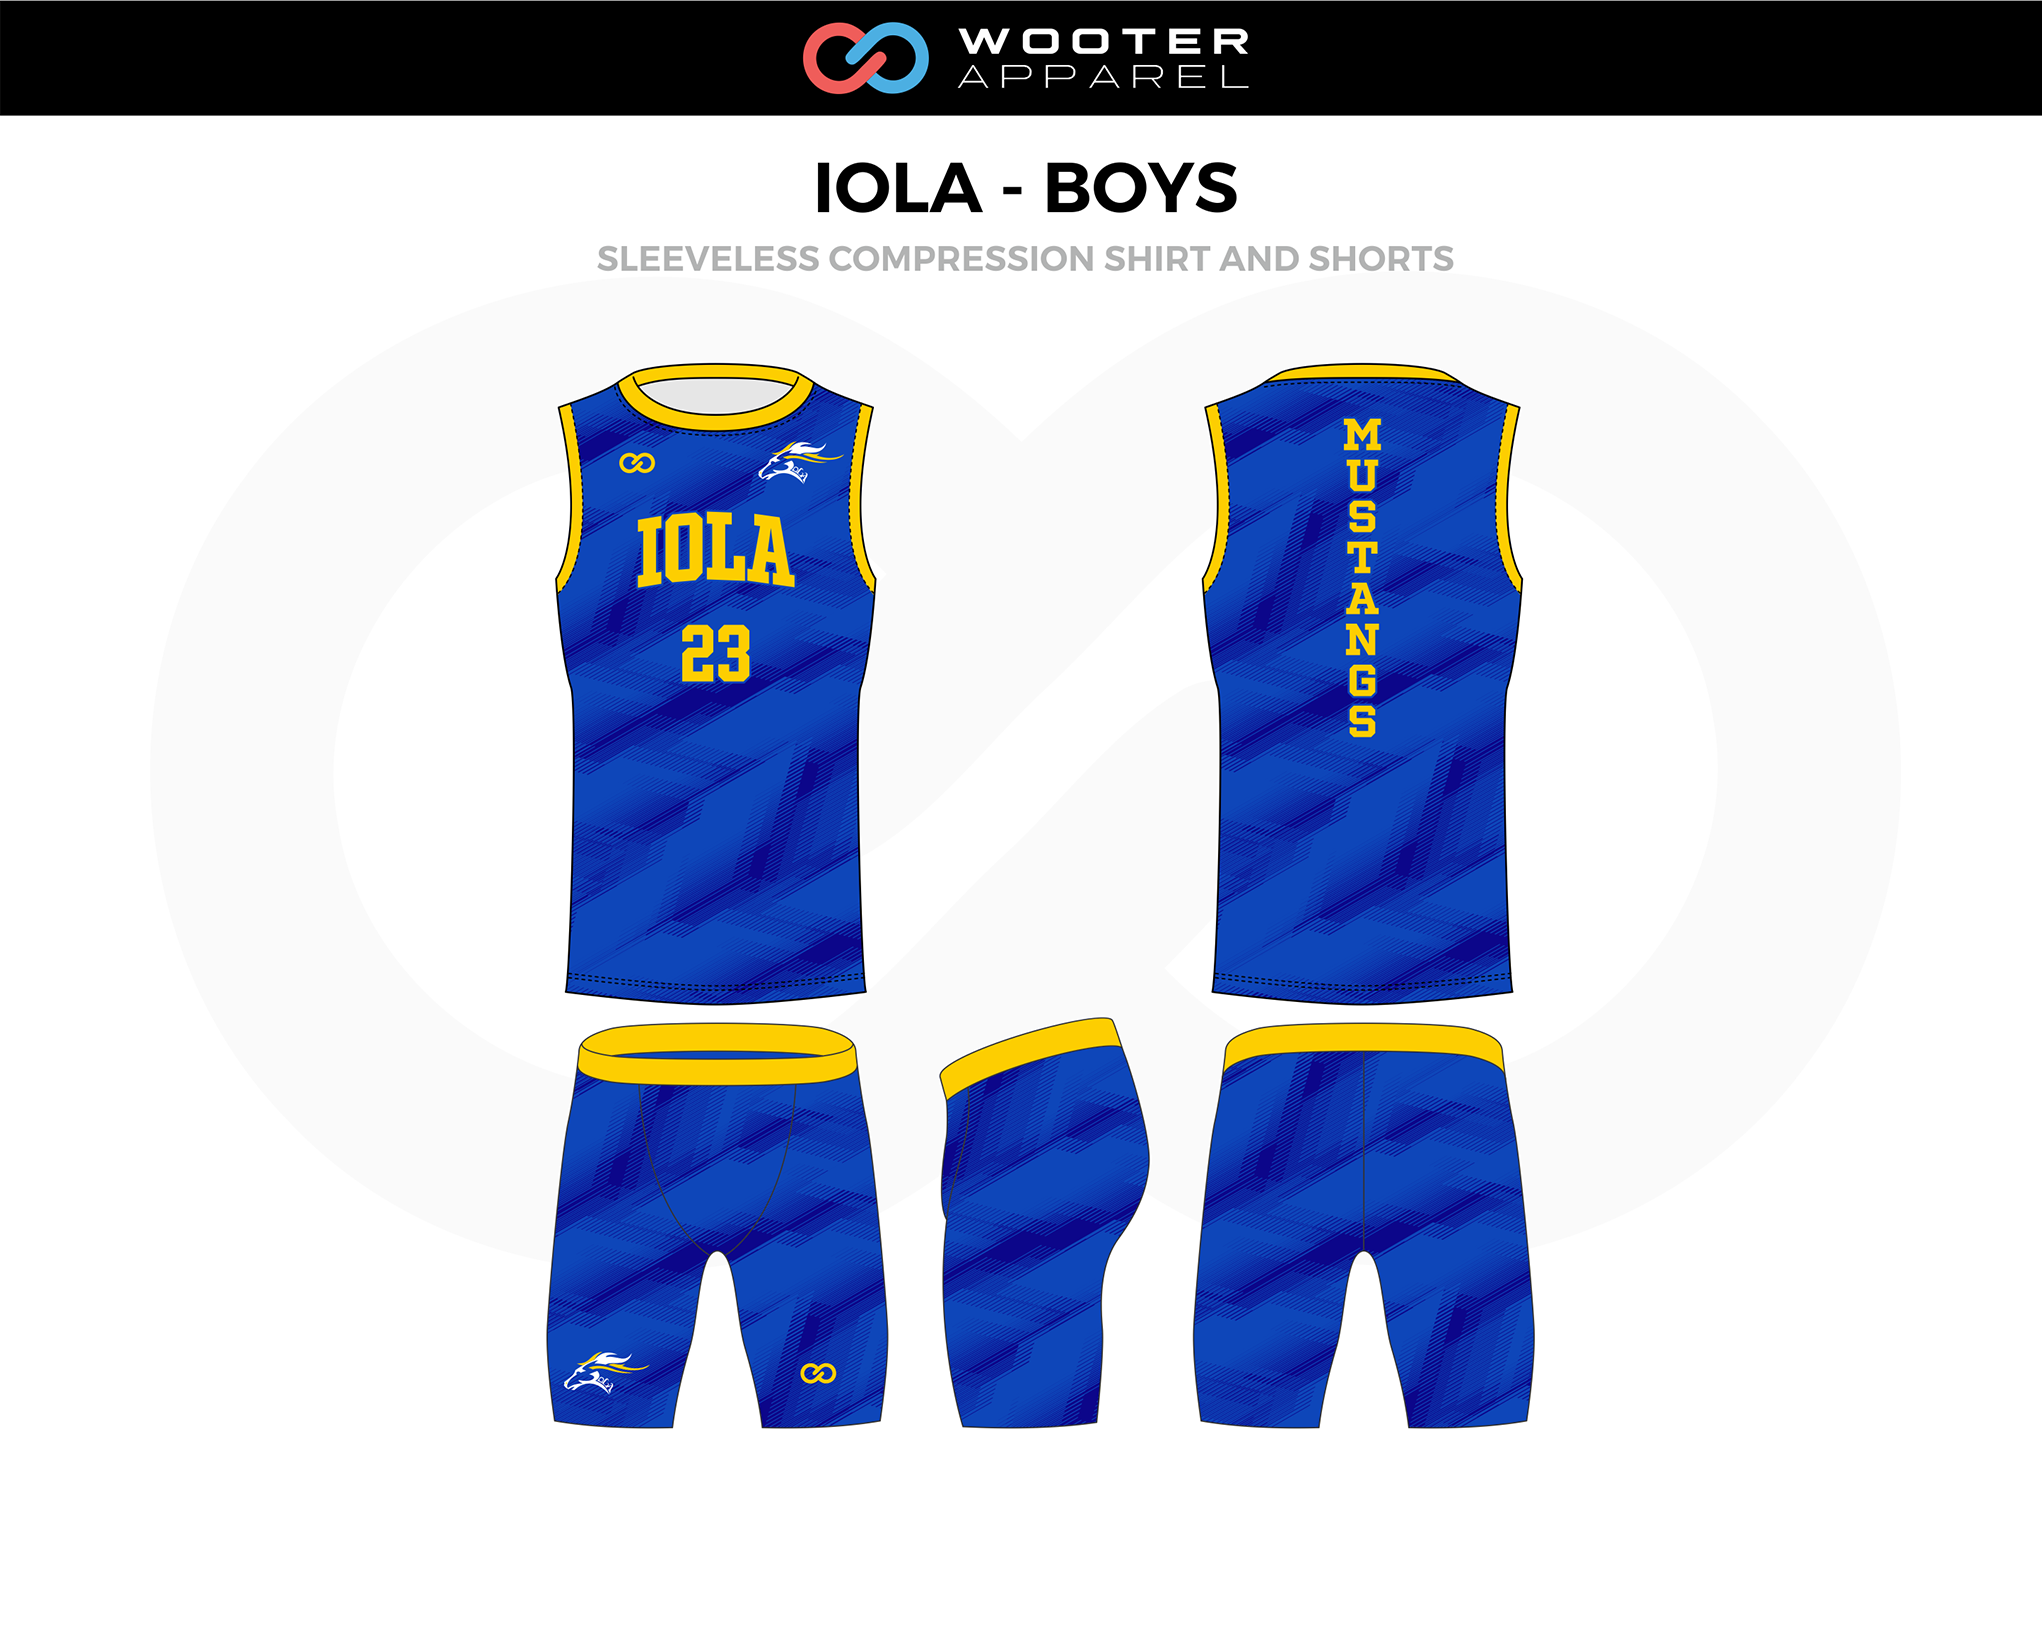 IOLA-BOYS Blue Yellow Sleeveless Compression Track Jerseys, and Shorts